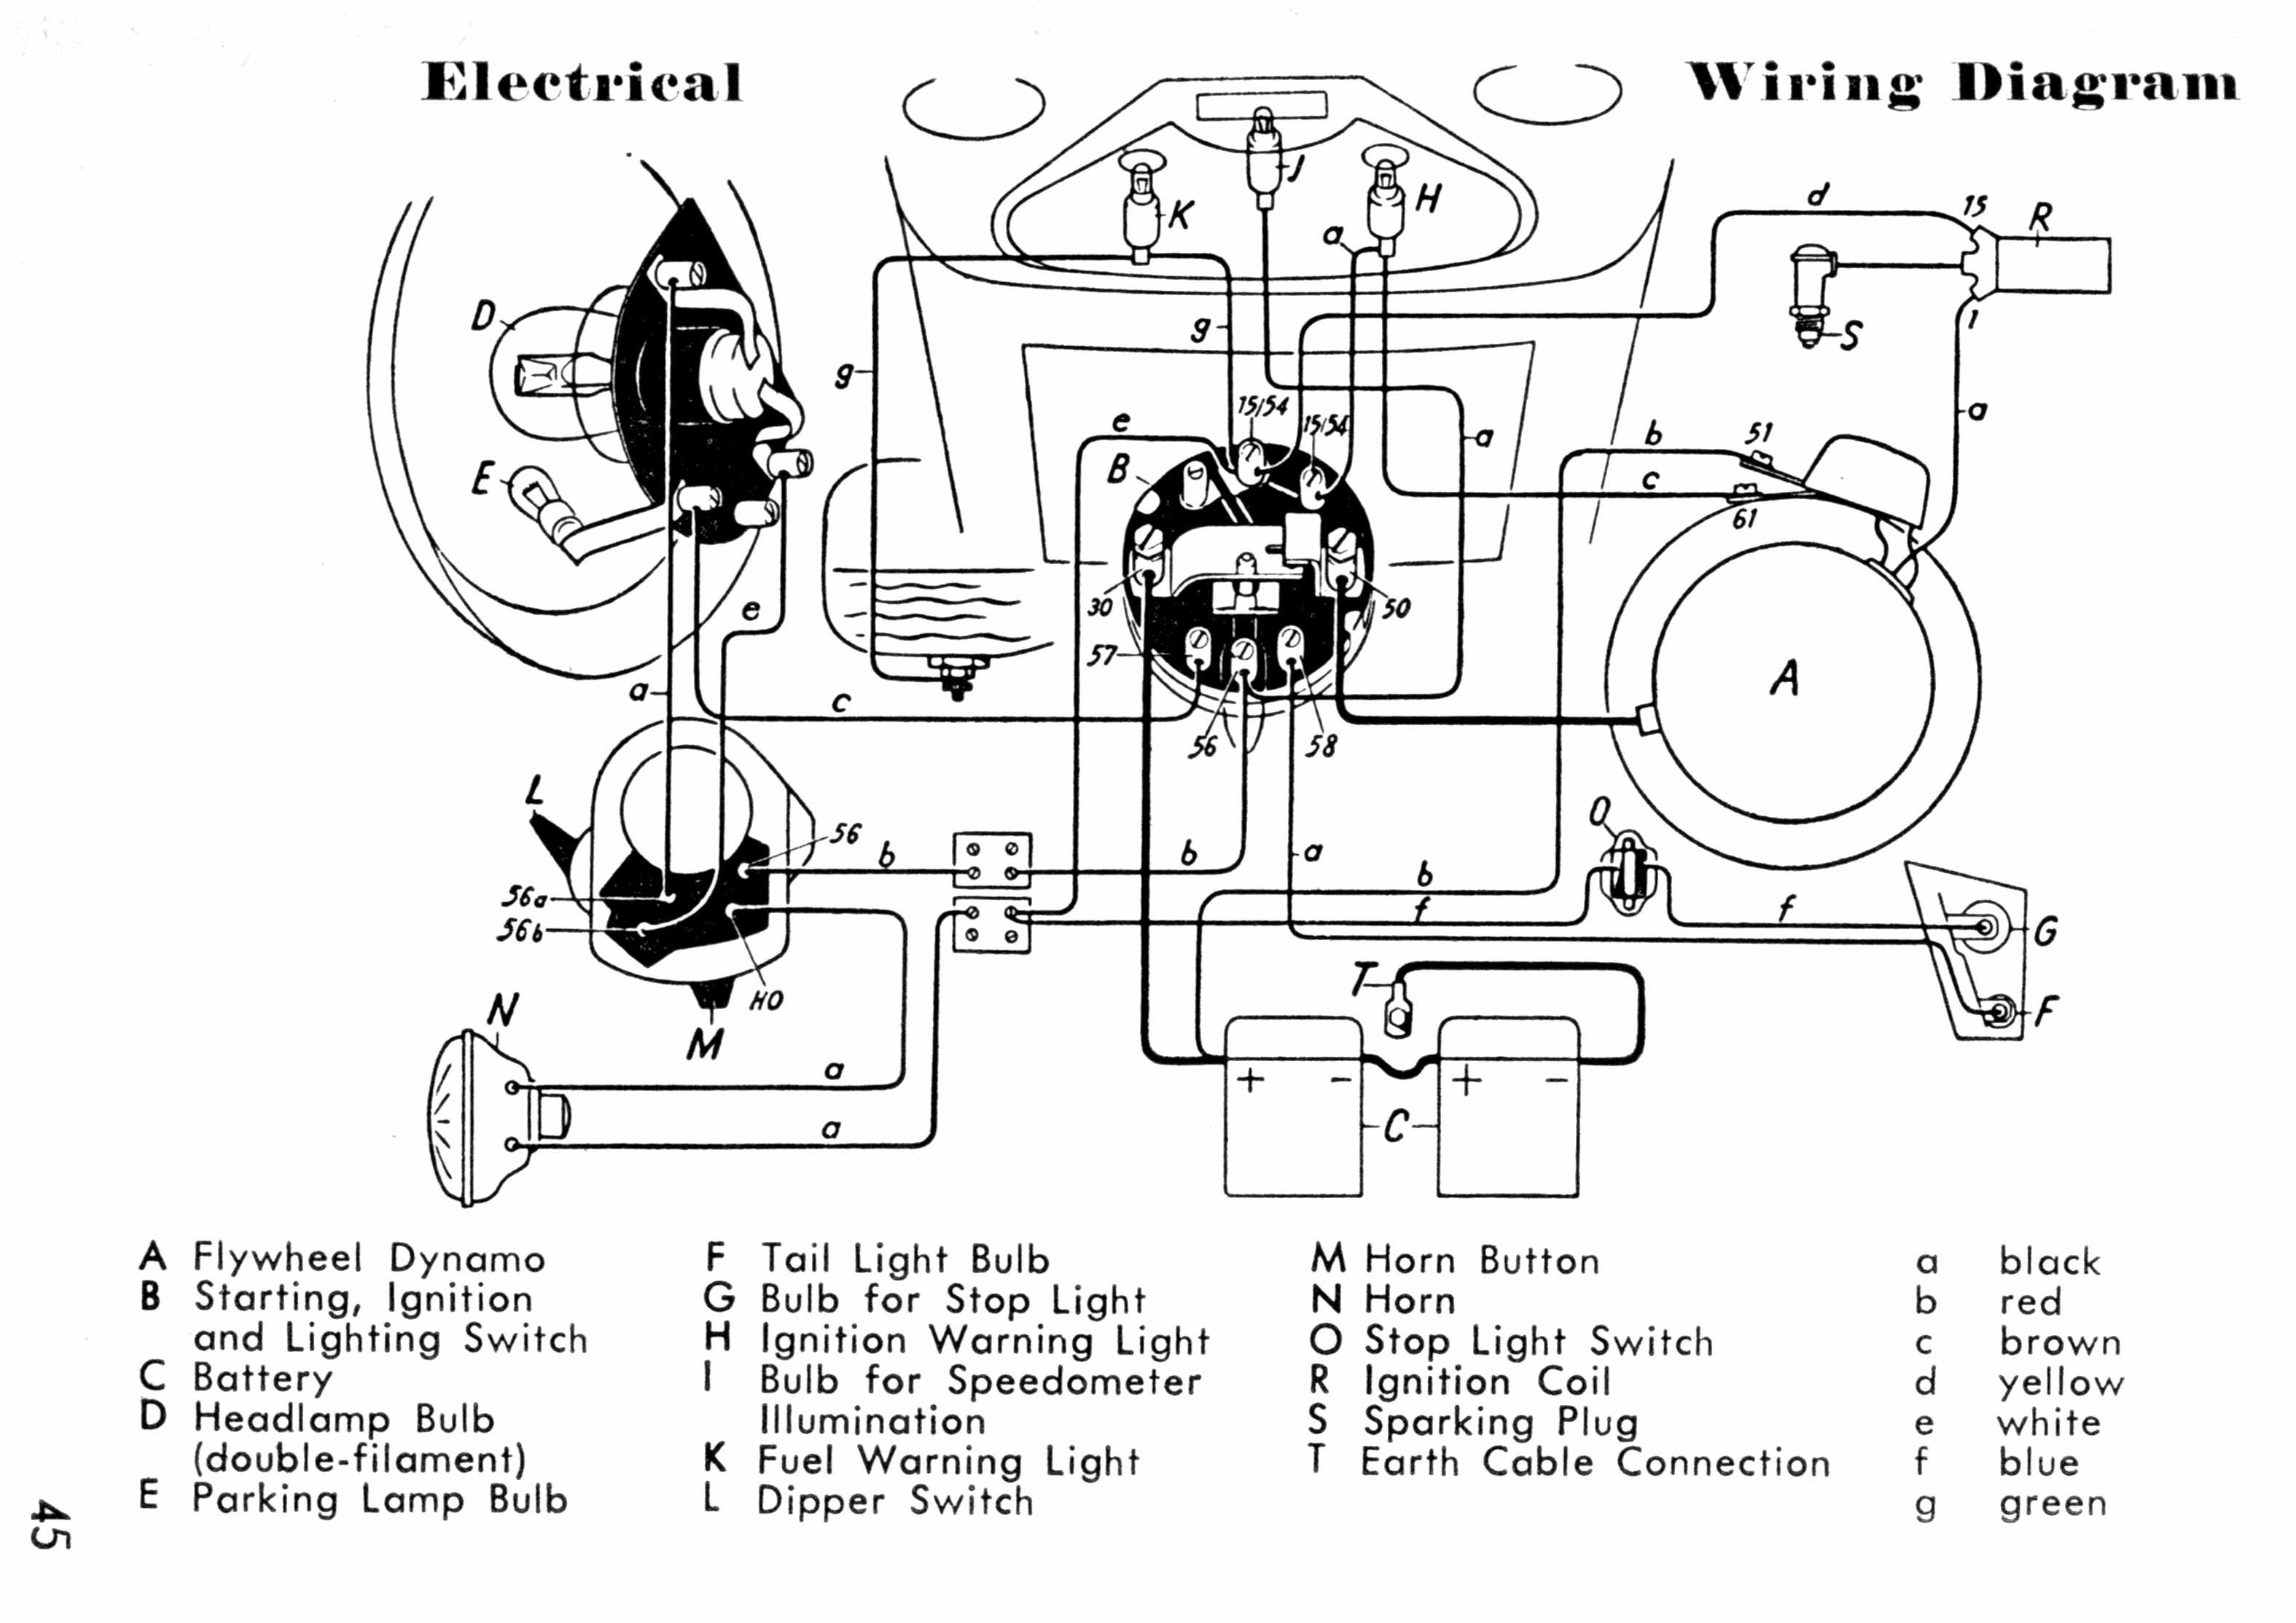 schematic electric scooter wiring diagram motorcycle wiring electrical diagram motorised bike [ 3150 x 2227 Pixel ]